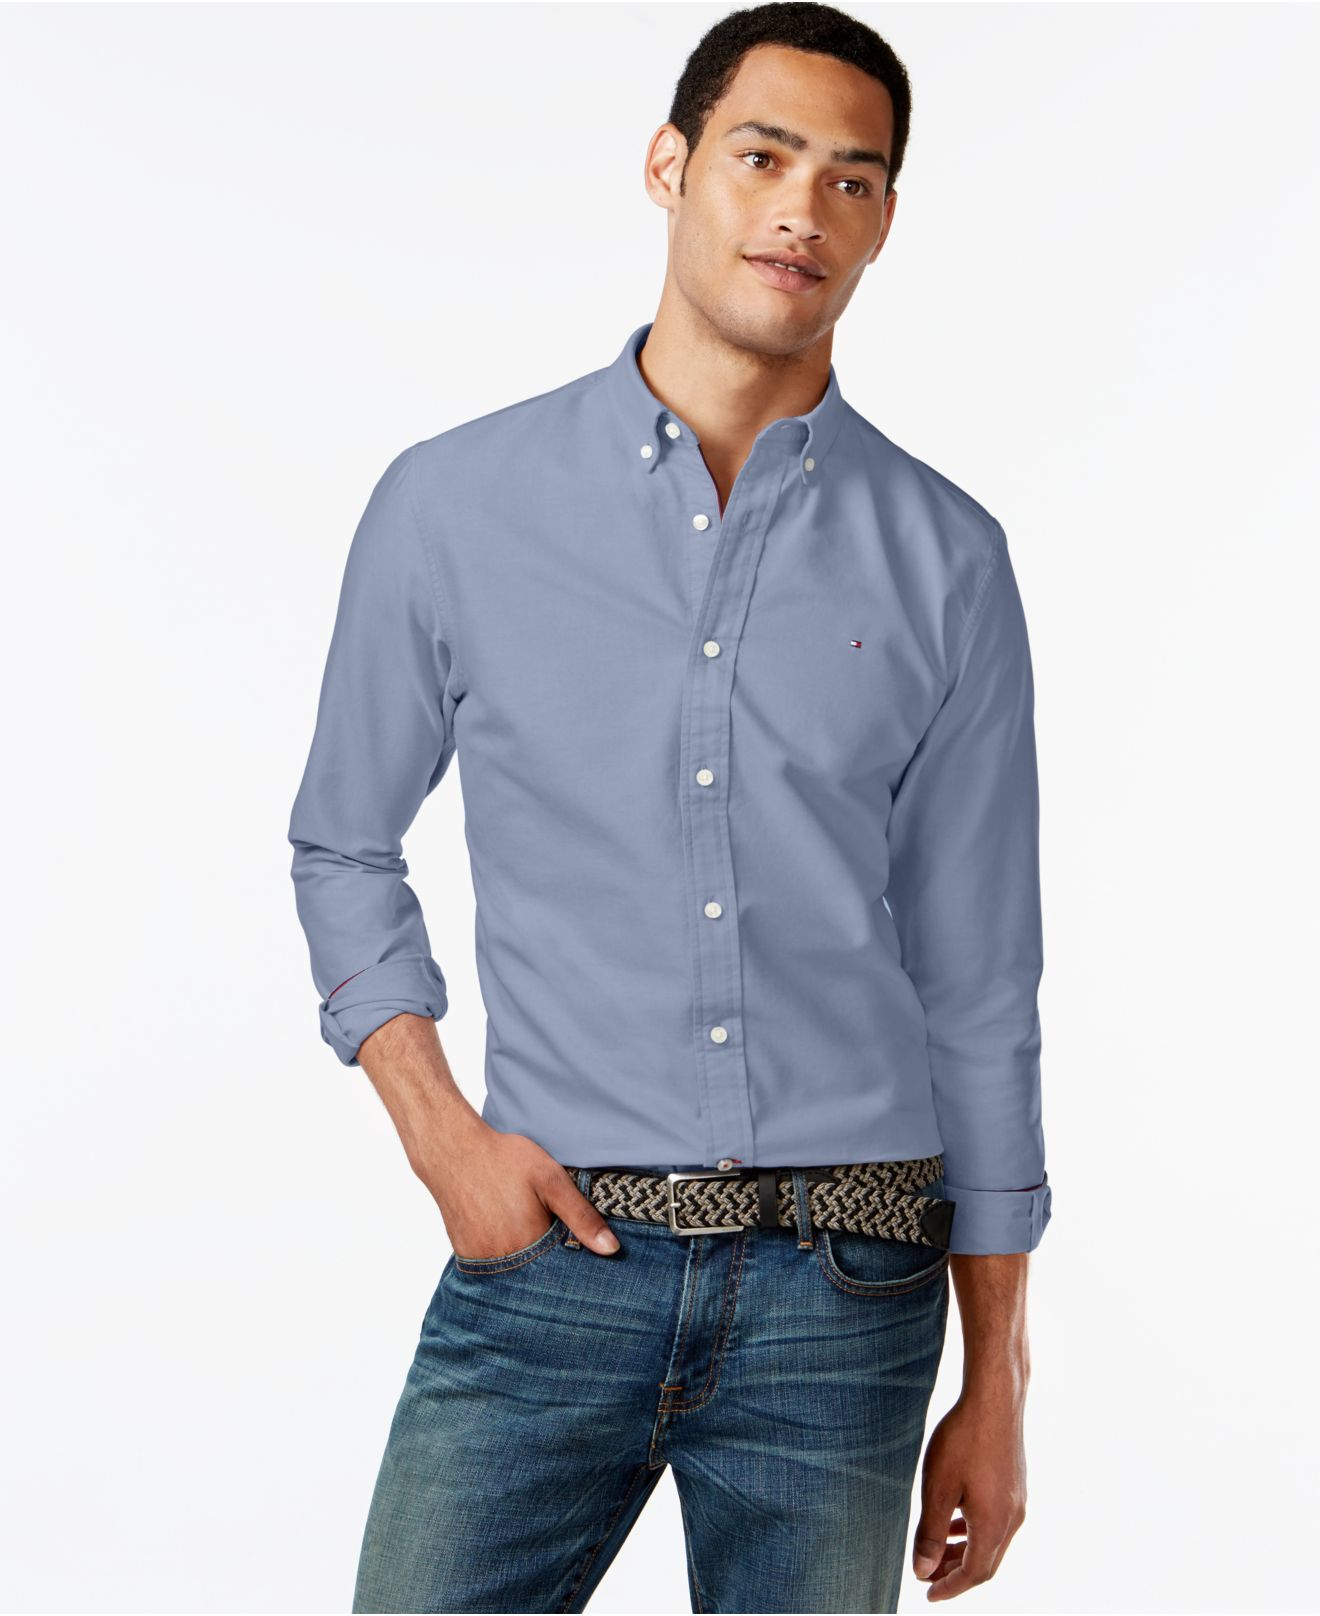 36084b070 Lyst - Tommy Hilfiger New England Solid Oxford Shirt in Blue for Men